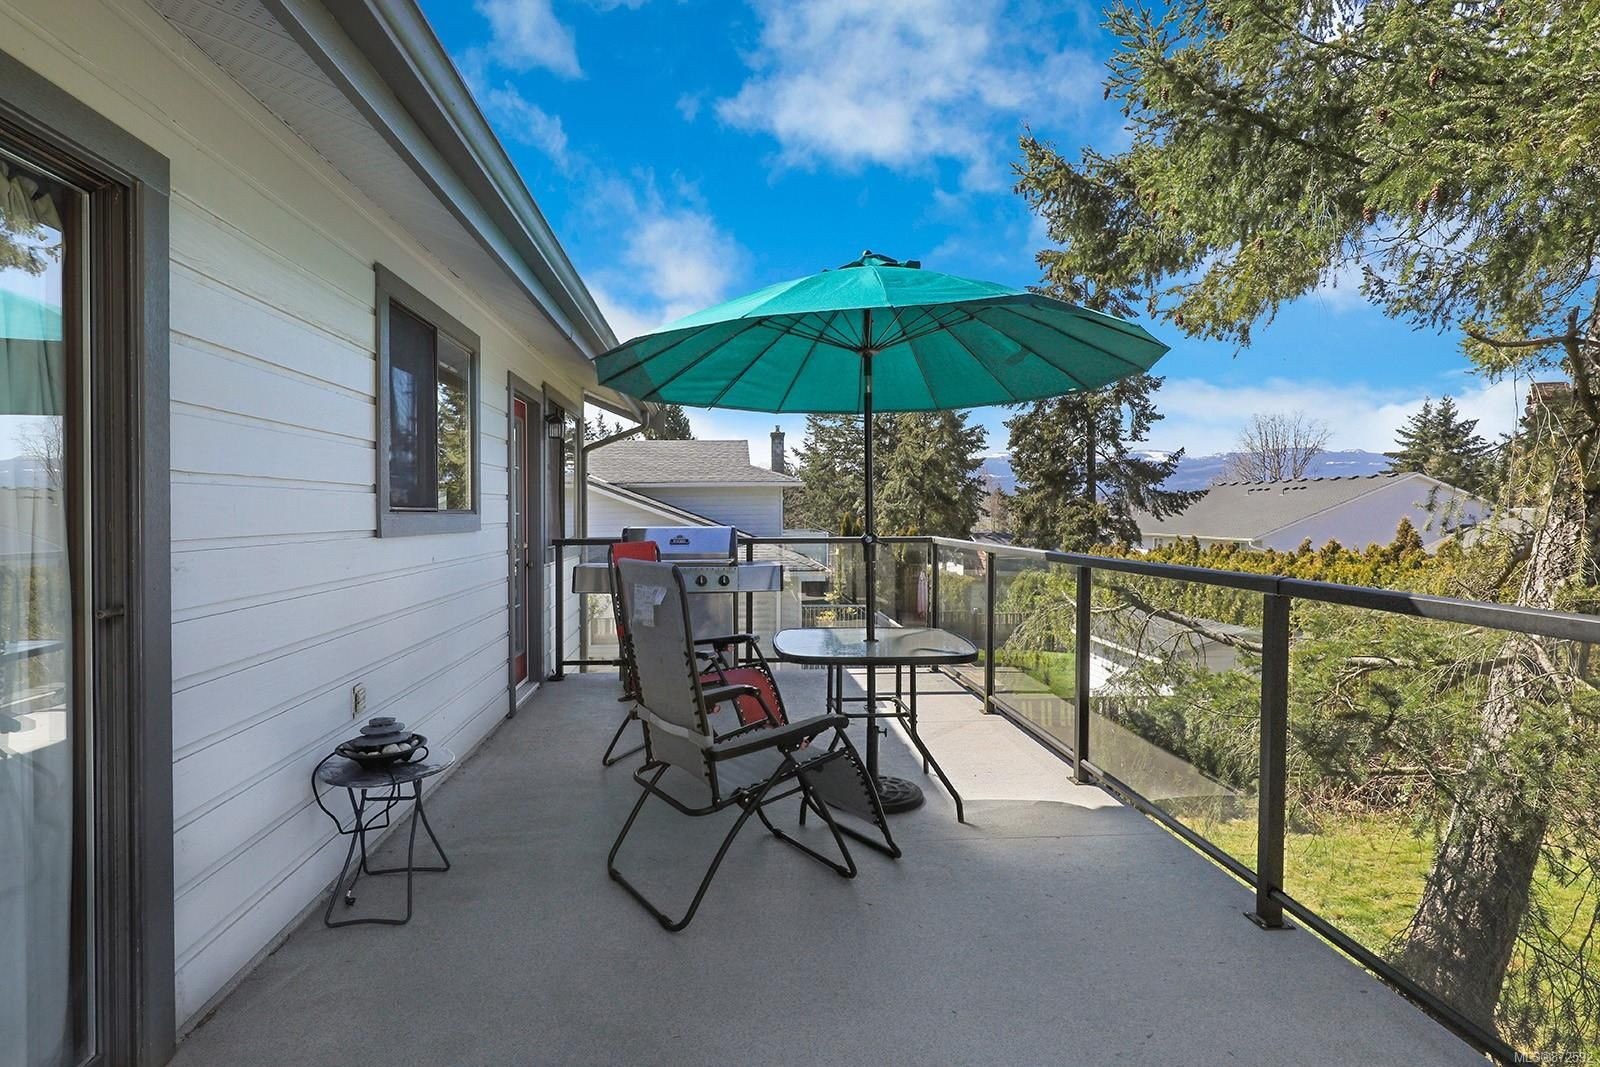 Photo 23: Photos: 1626 Valley Cres in : CV Courtenay East House for sale (Comox Valley)  : MLS®# 872592